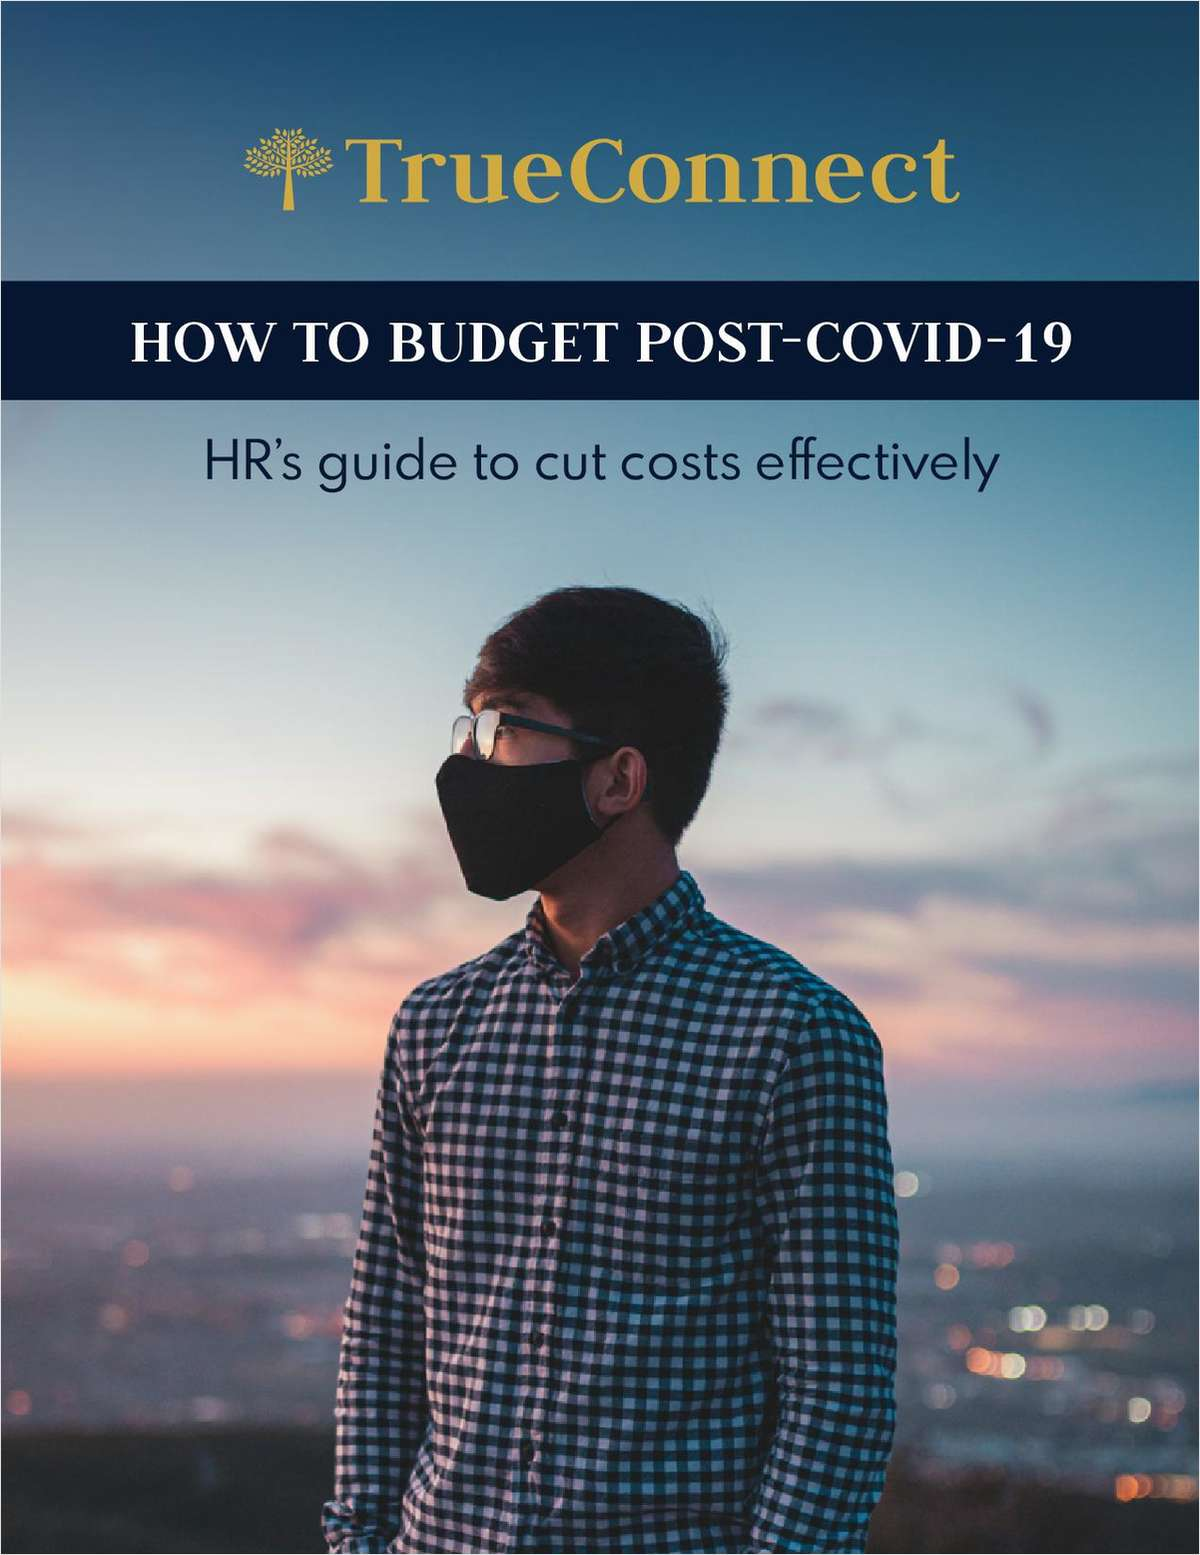 Help Clients Budget Post-COVID-19: A Guide to Cut Costs Effectively